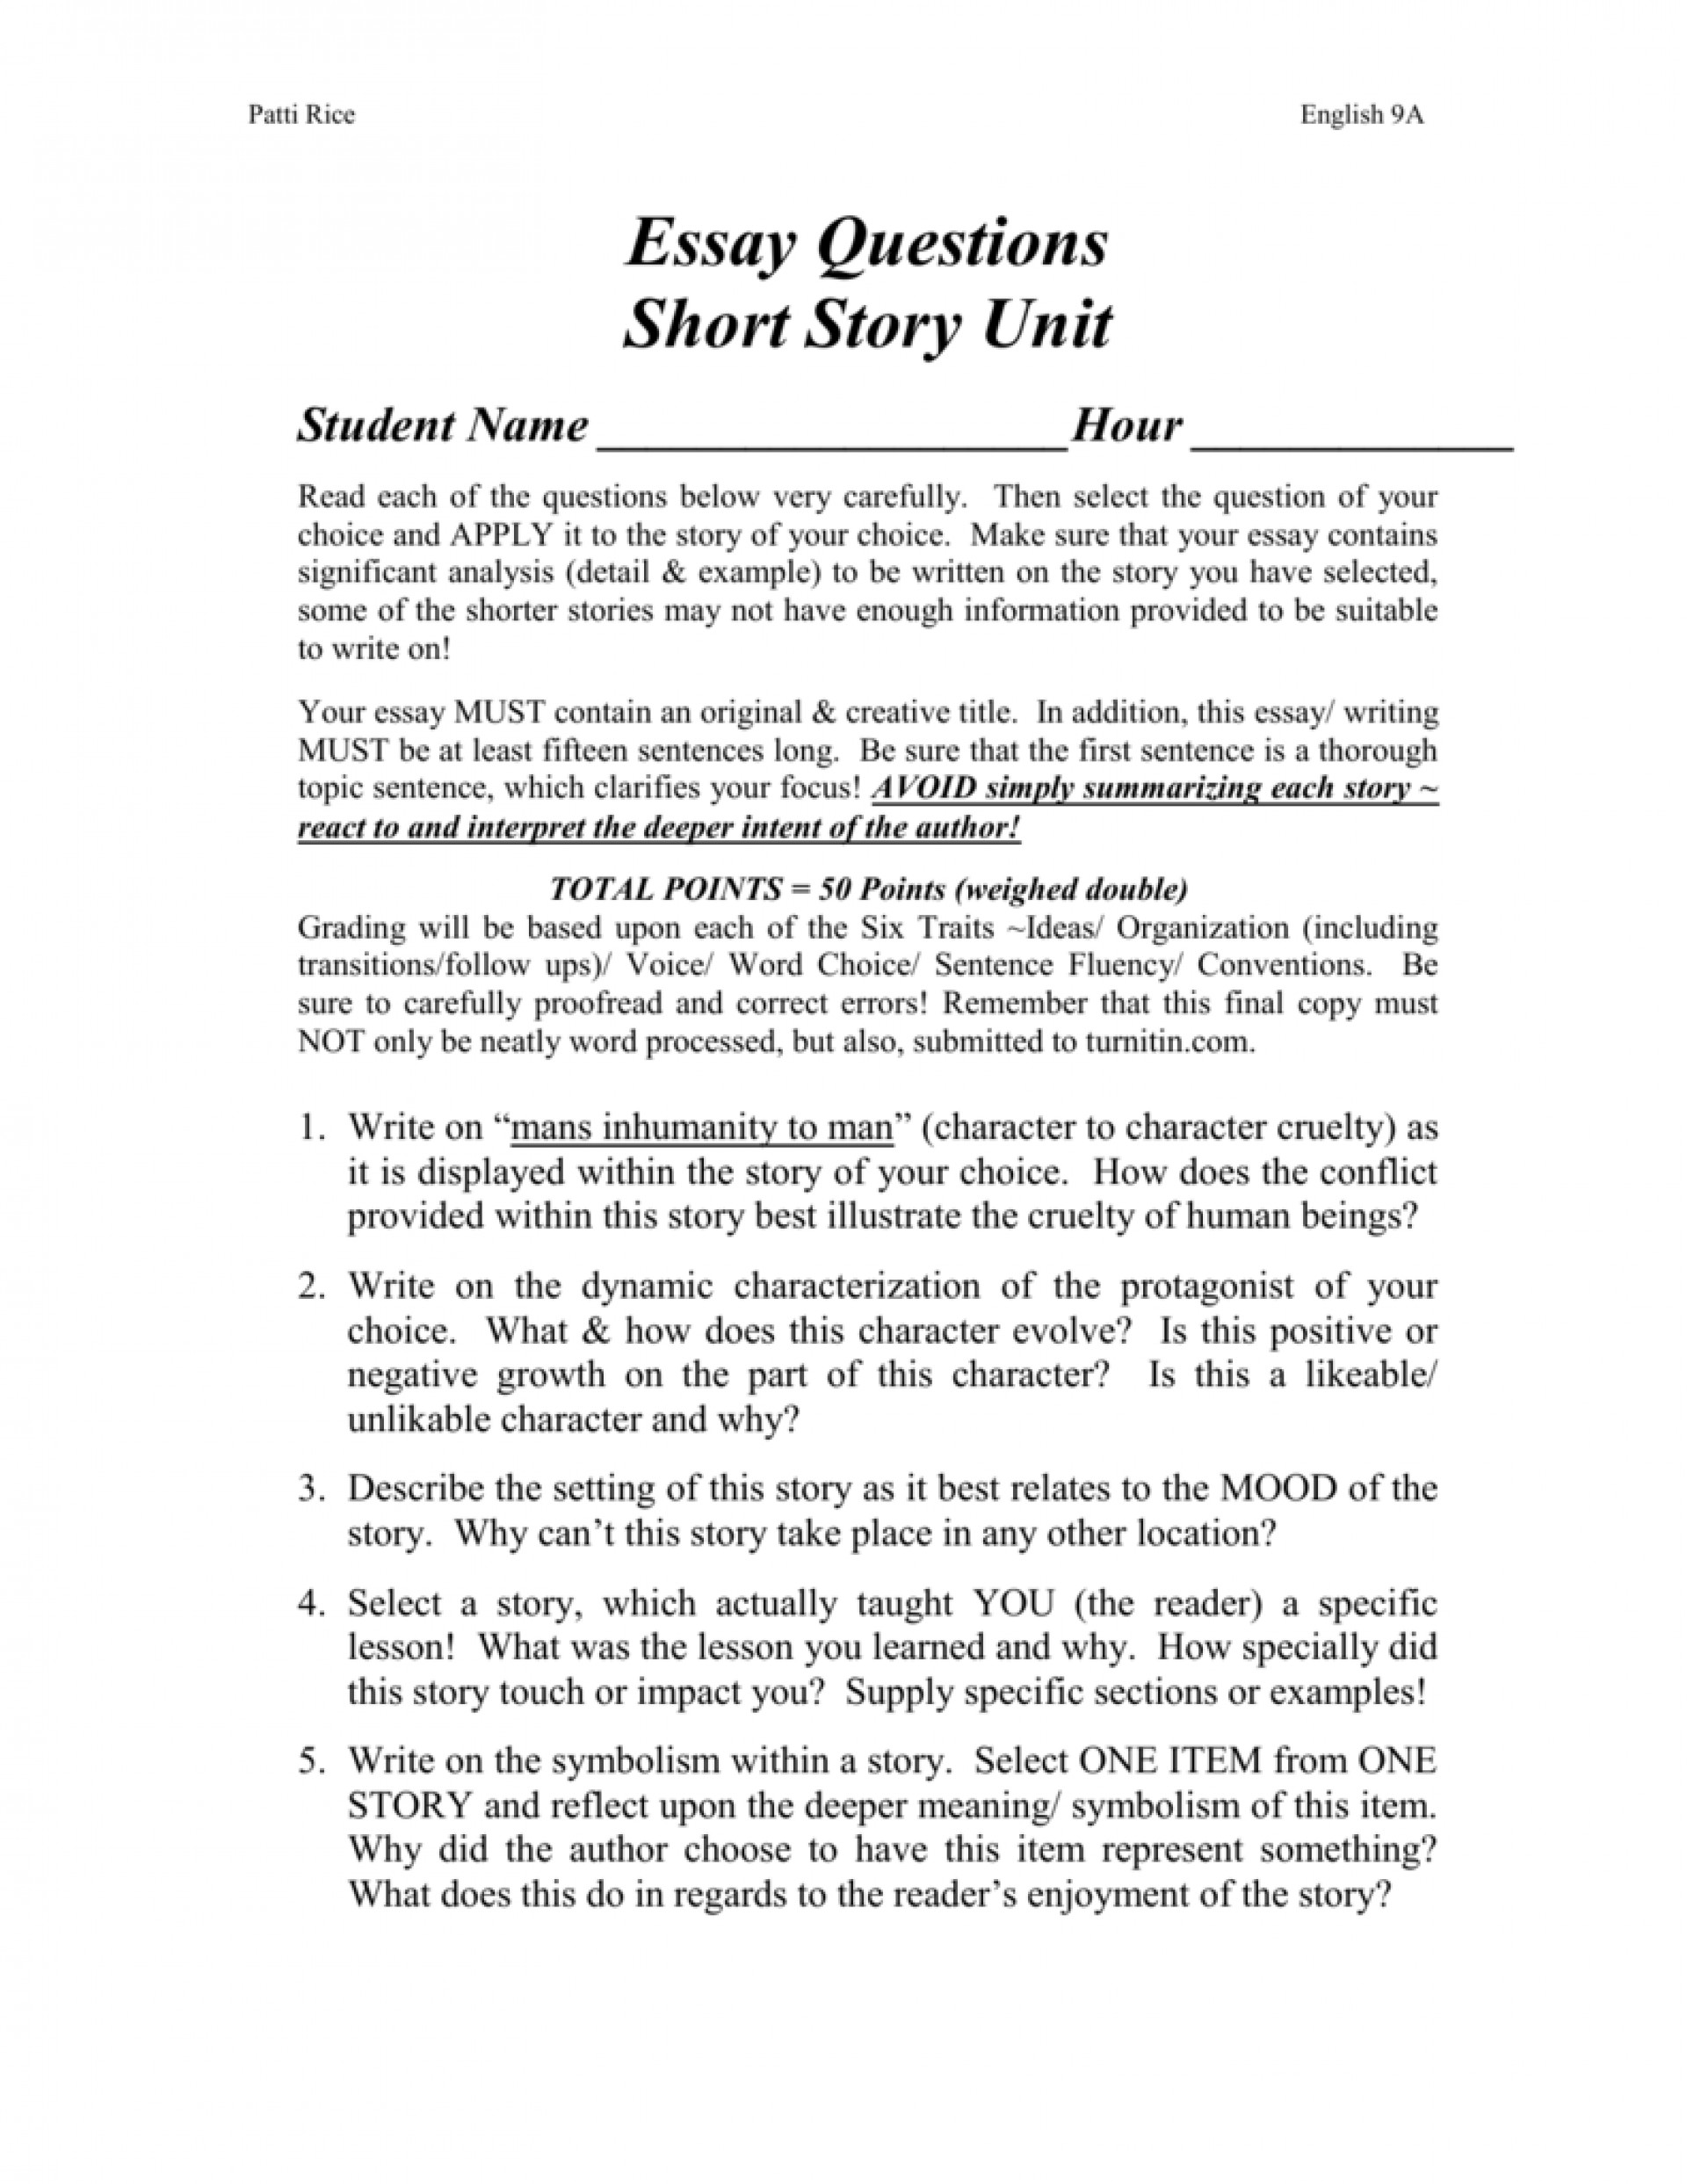 011 Essay Example 008001643 1 How To Write Surprising A Short Response Answer Question In Apa Format 1920